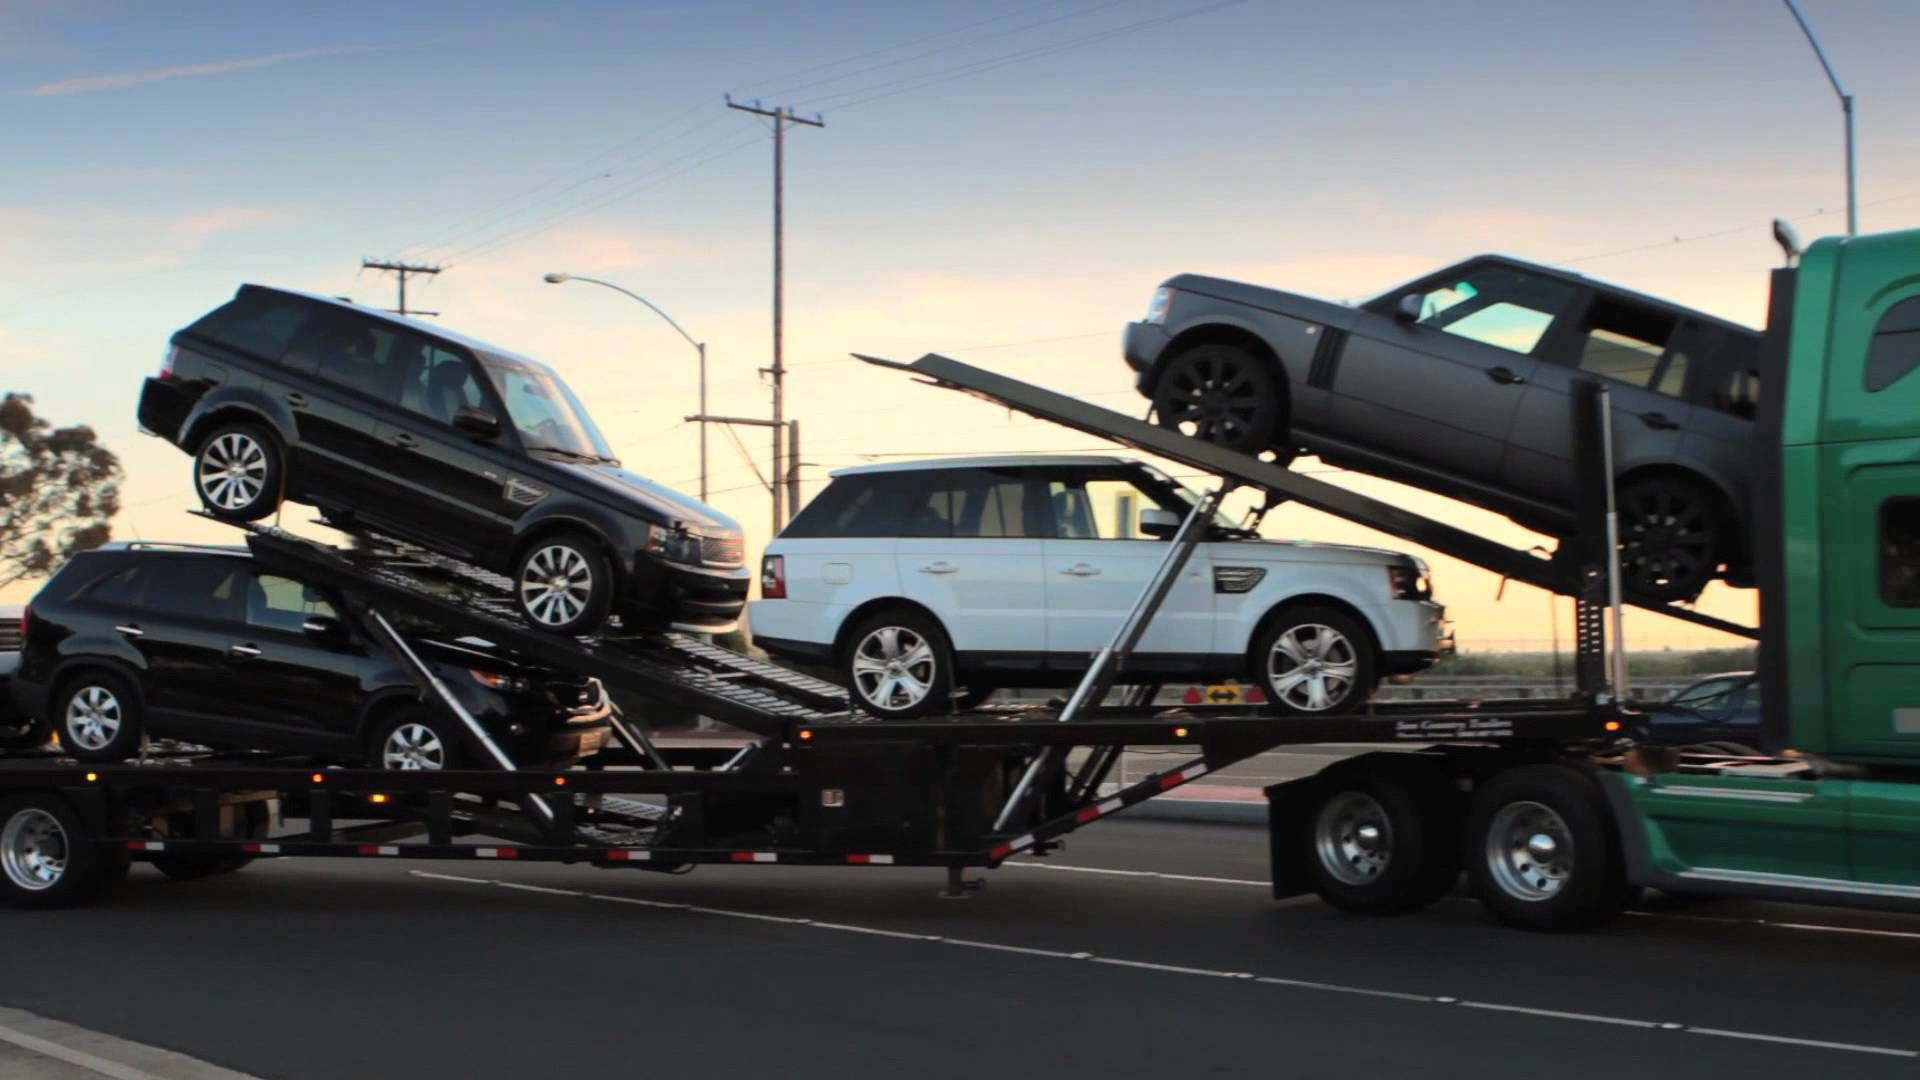 Car Transport Quote Free Car Transport Quotes Can Be Requested Online On Our